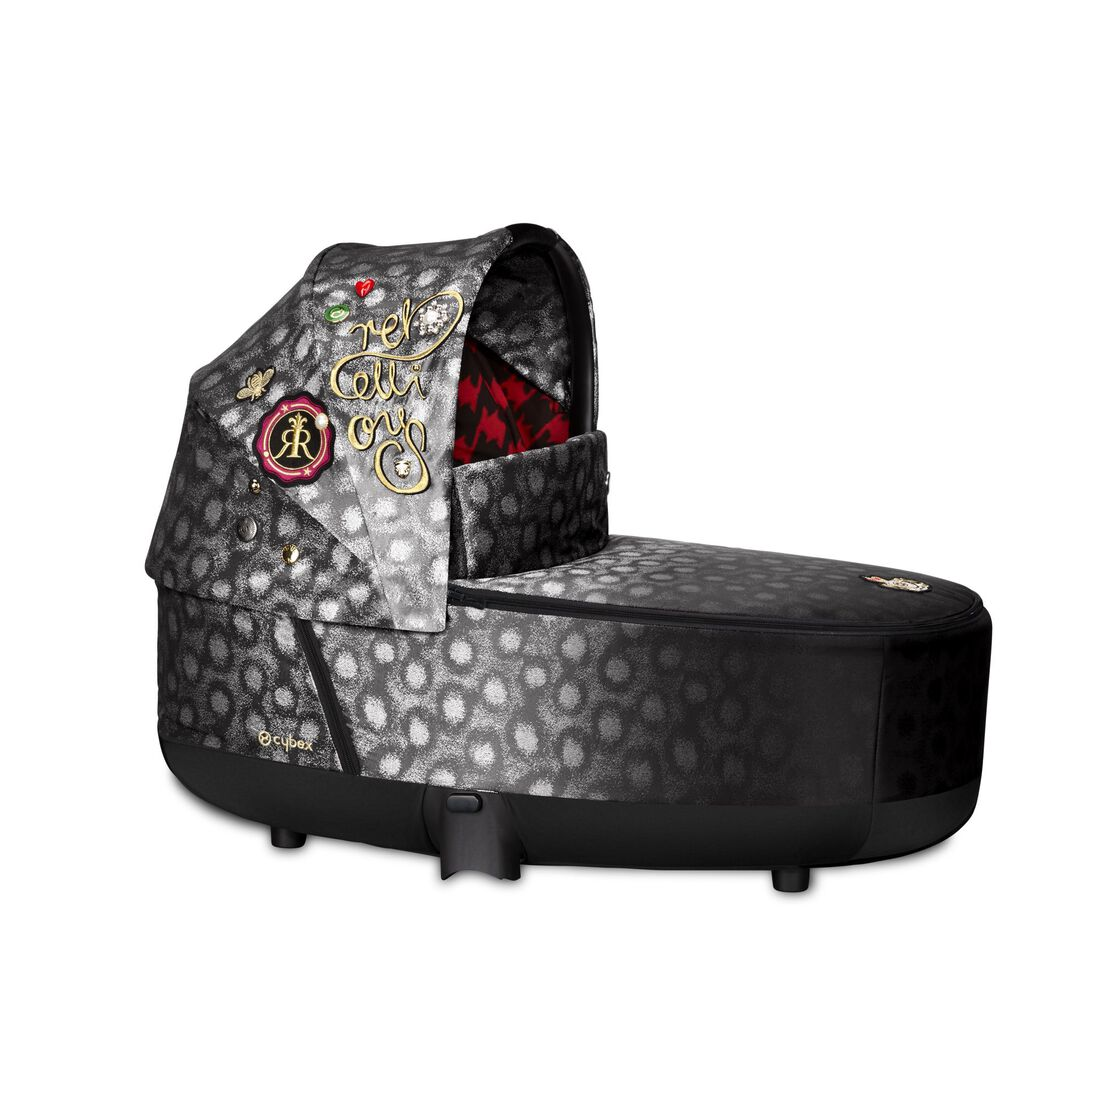 CYBEX Priam Lux Carry Cot - Rebellious in Rebellious large image number 1